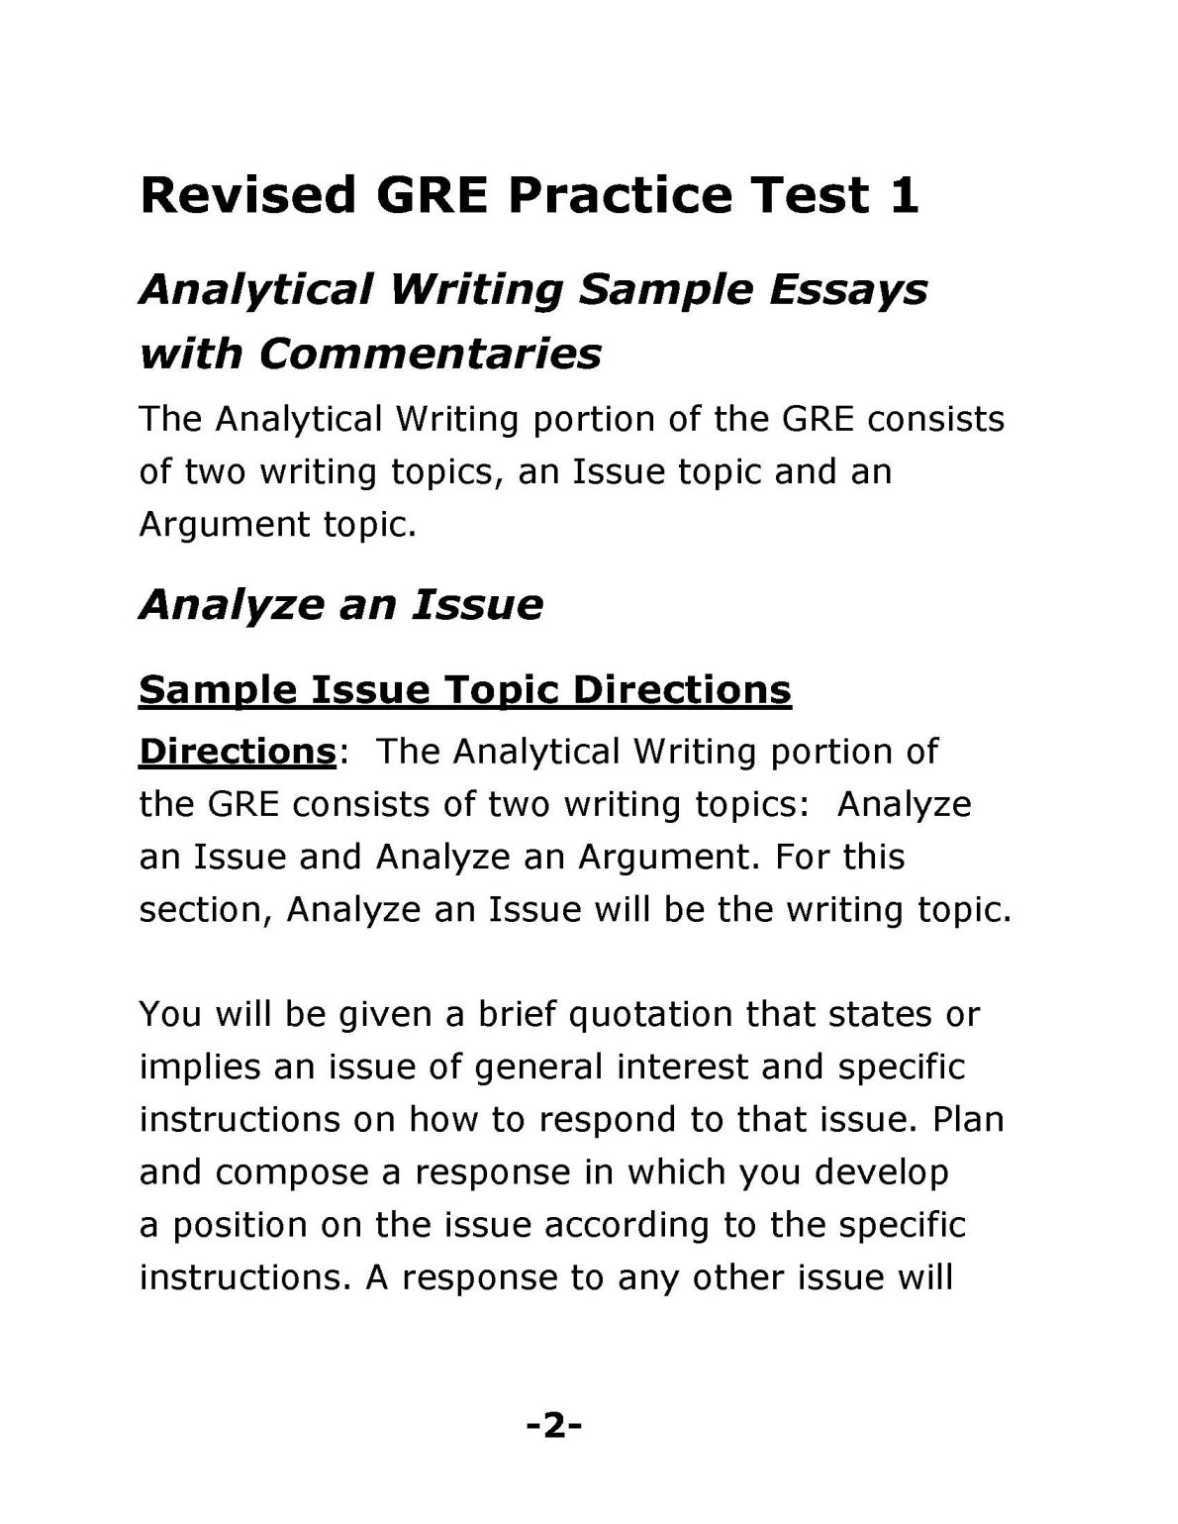 003 How To Write Gre Essay Example Online Helper Get Your Task Done By Pro Analysis Of An Sample Test Papers With Soluti Essays For Analytical Stunning A Issue Great Writing Full